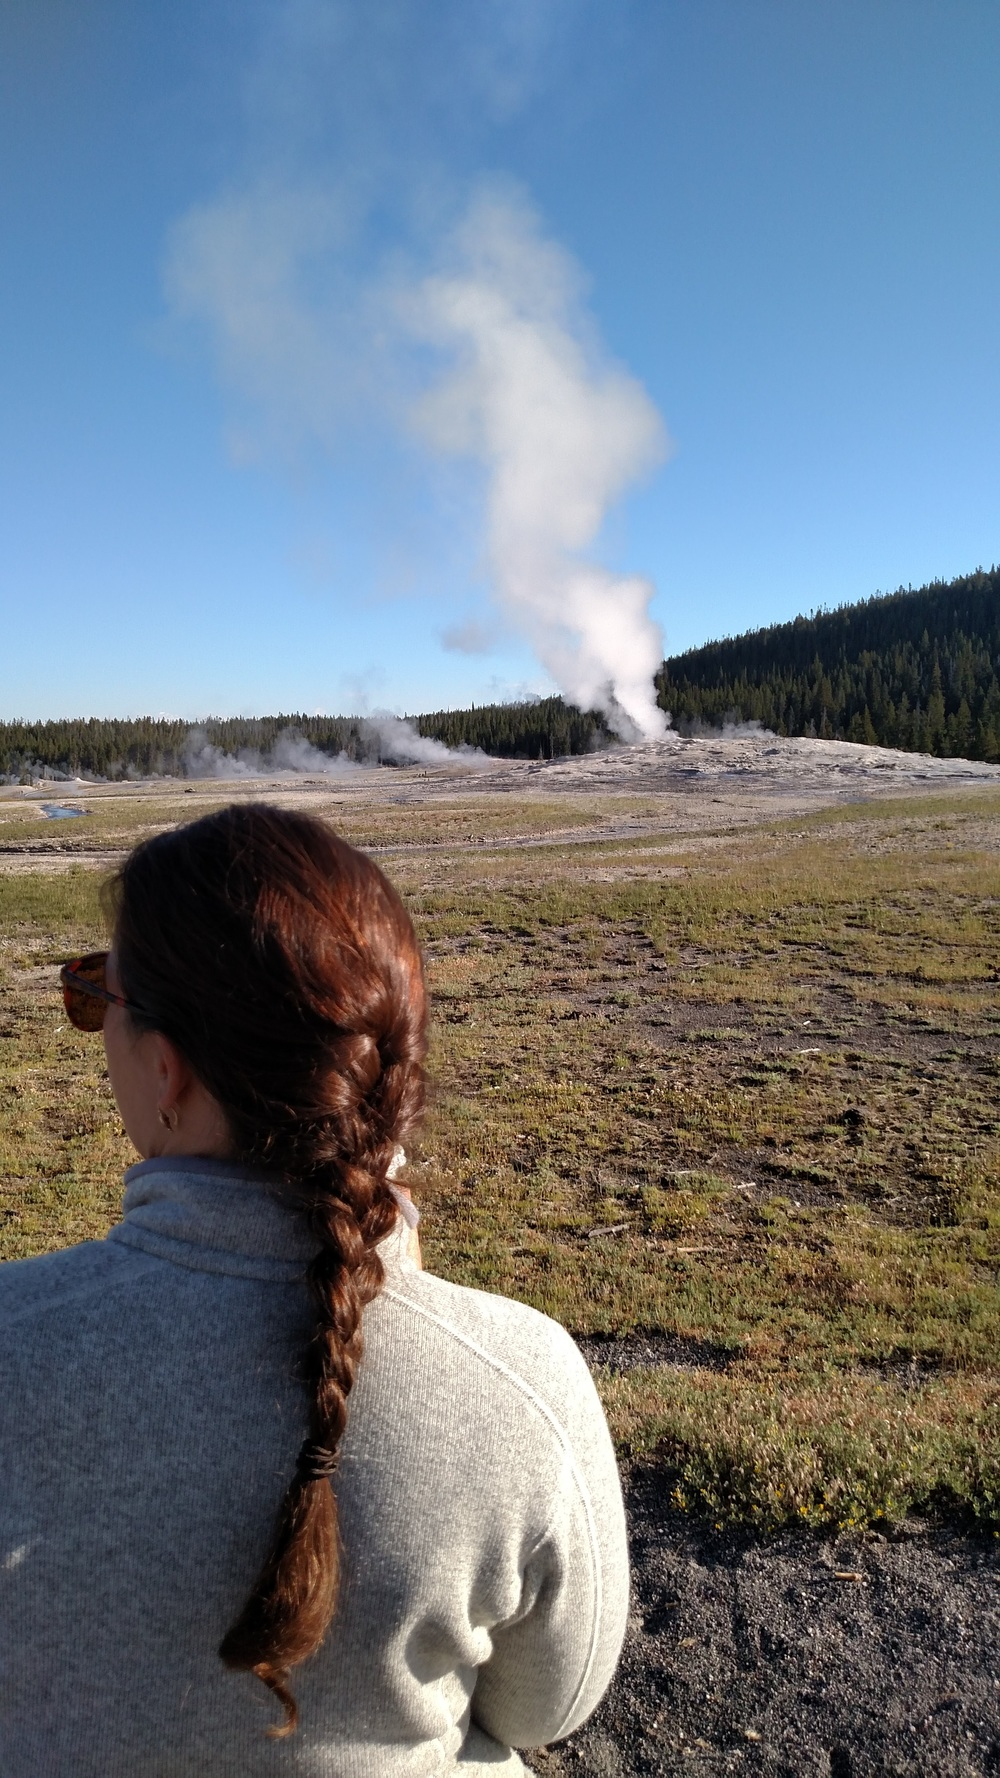 me waiting for Old Faithful and refusing to engage with the world prior to coffee. We thought Old Faithful was just okay